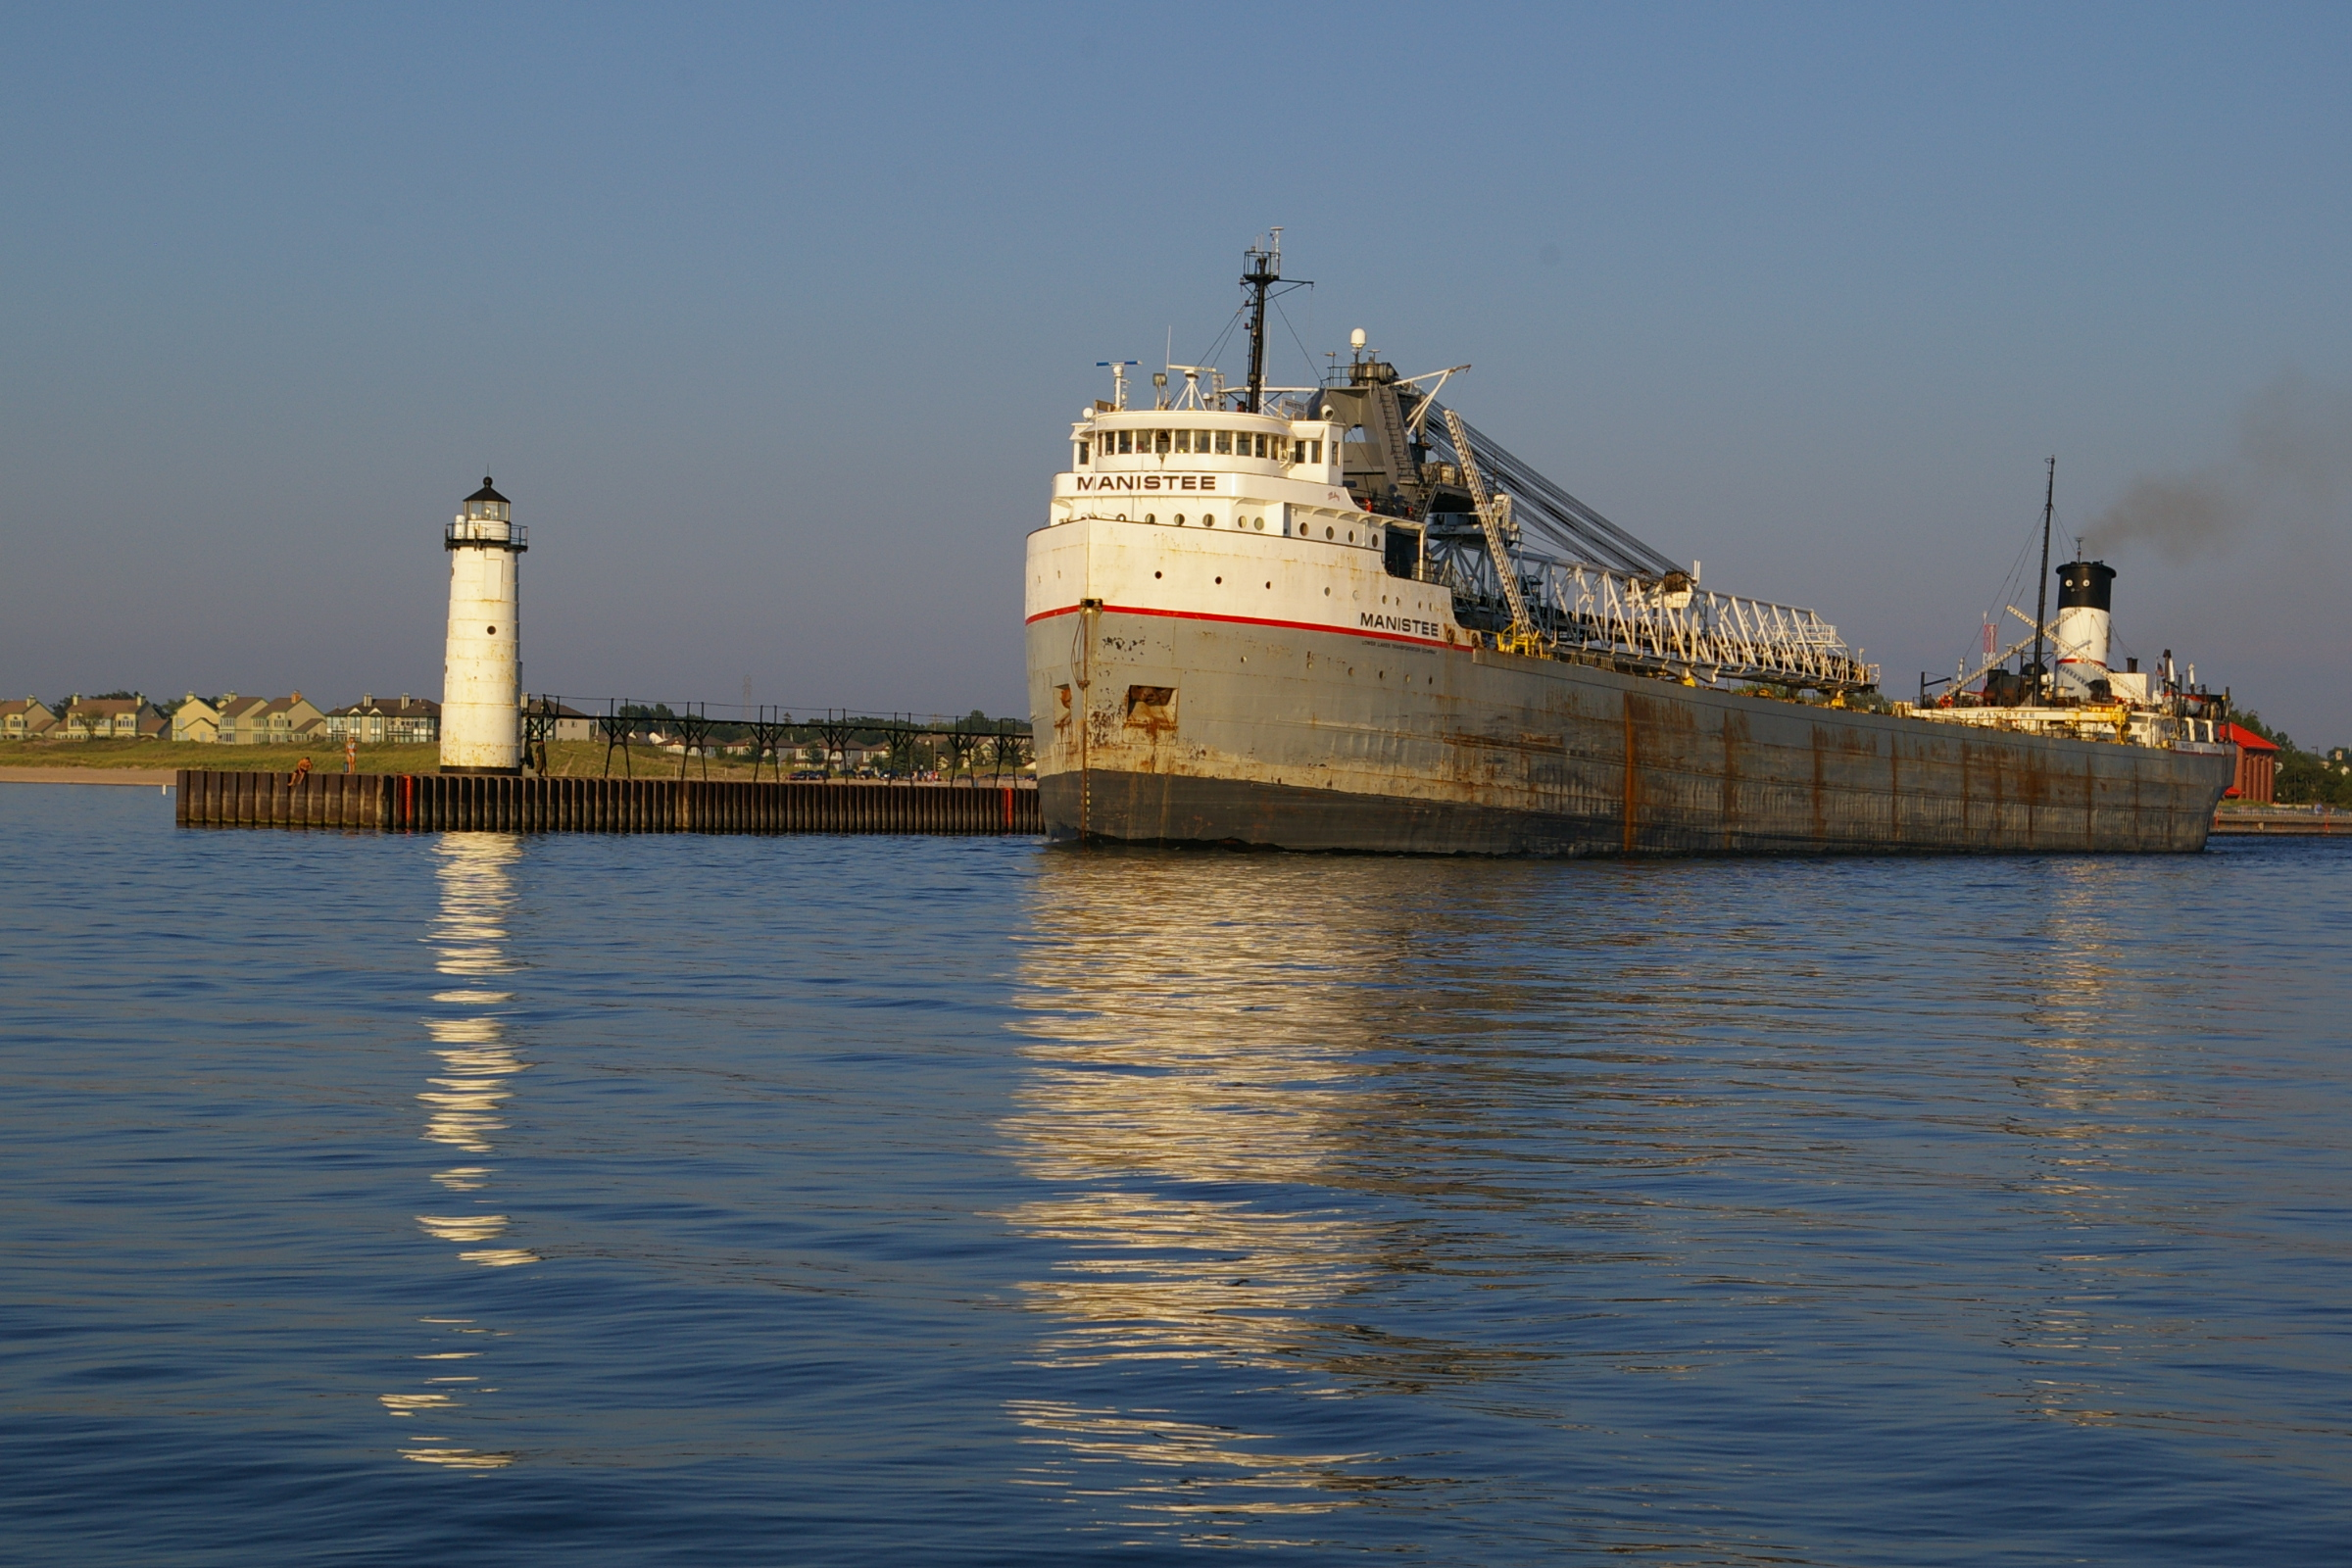 Great Lakes Freighter Manistee exiting the Harbor next to the Fifth Avenue Lighthouse  as seen from Lake Michigan